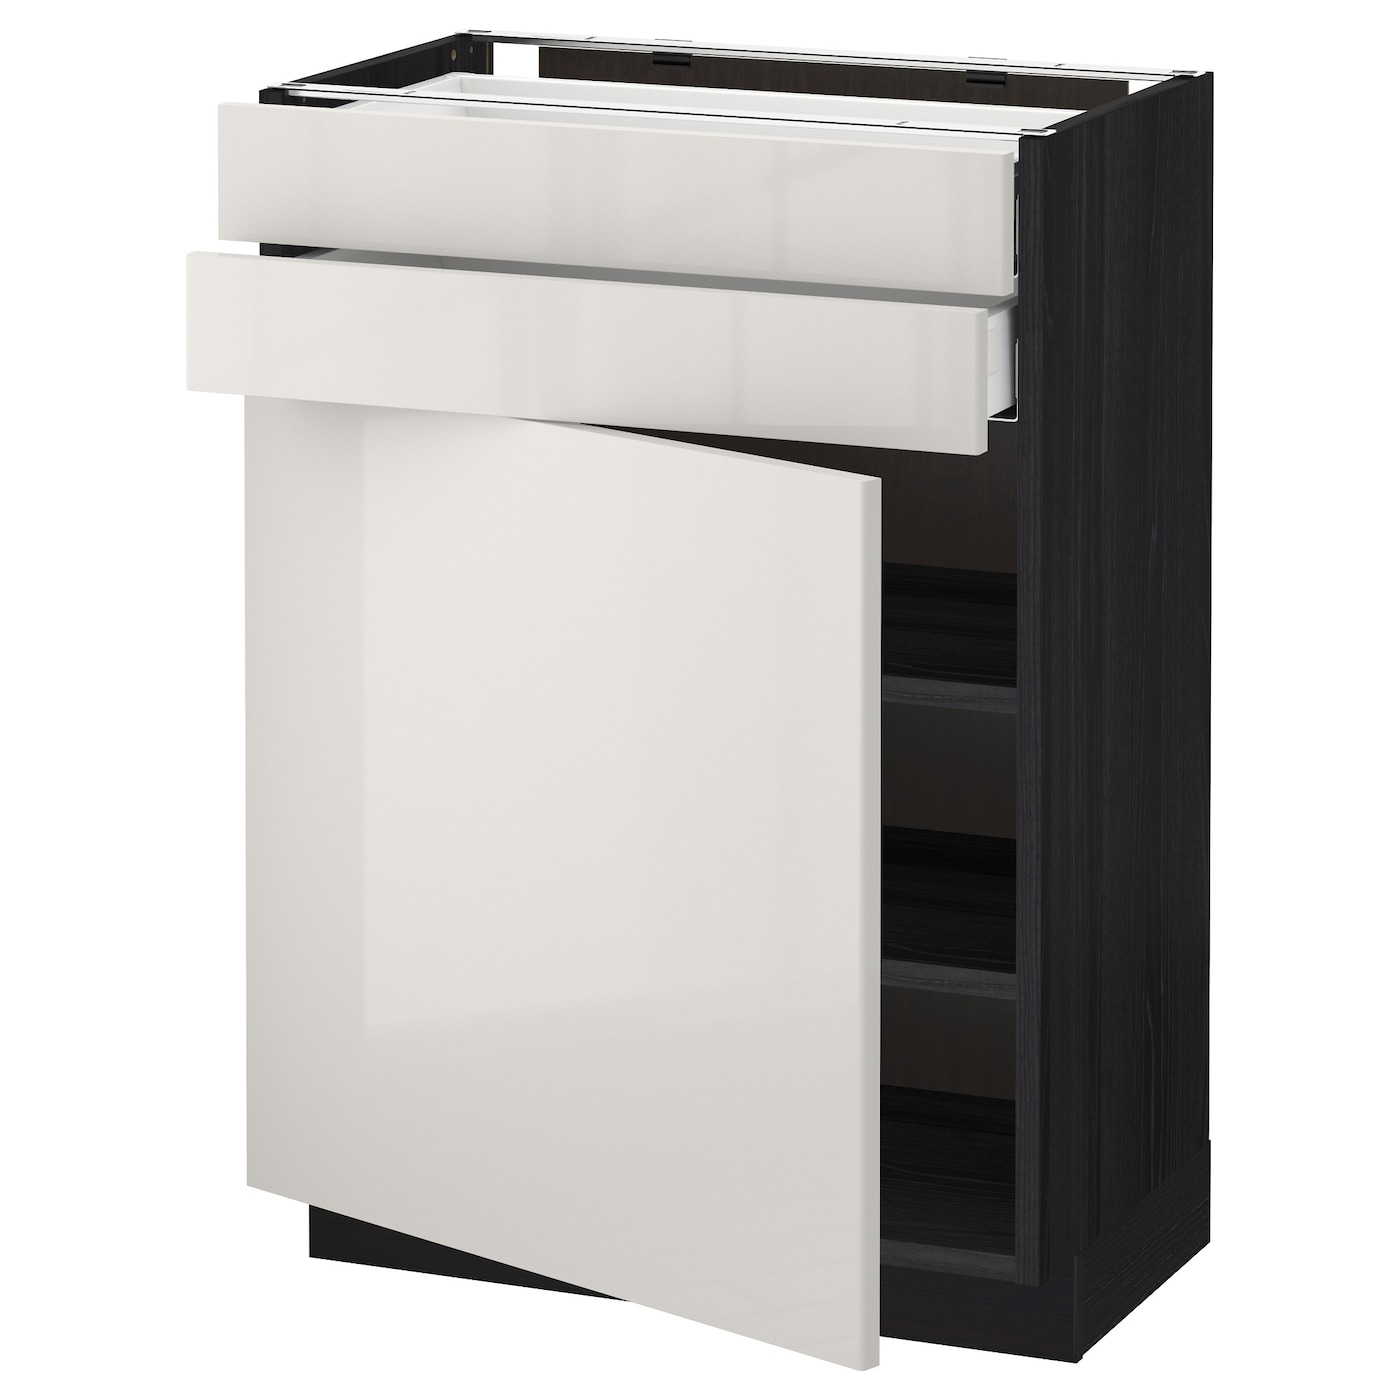 IKEA METOD/MAXIMERA base cabinet w door/2 drawers Smooth-running drawers with stop.